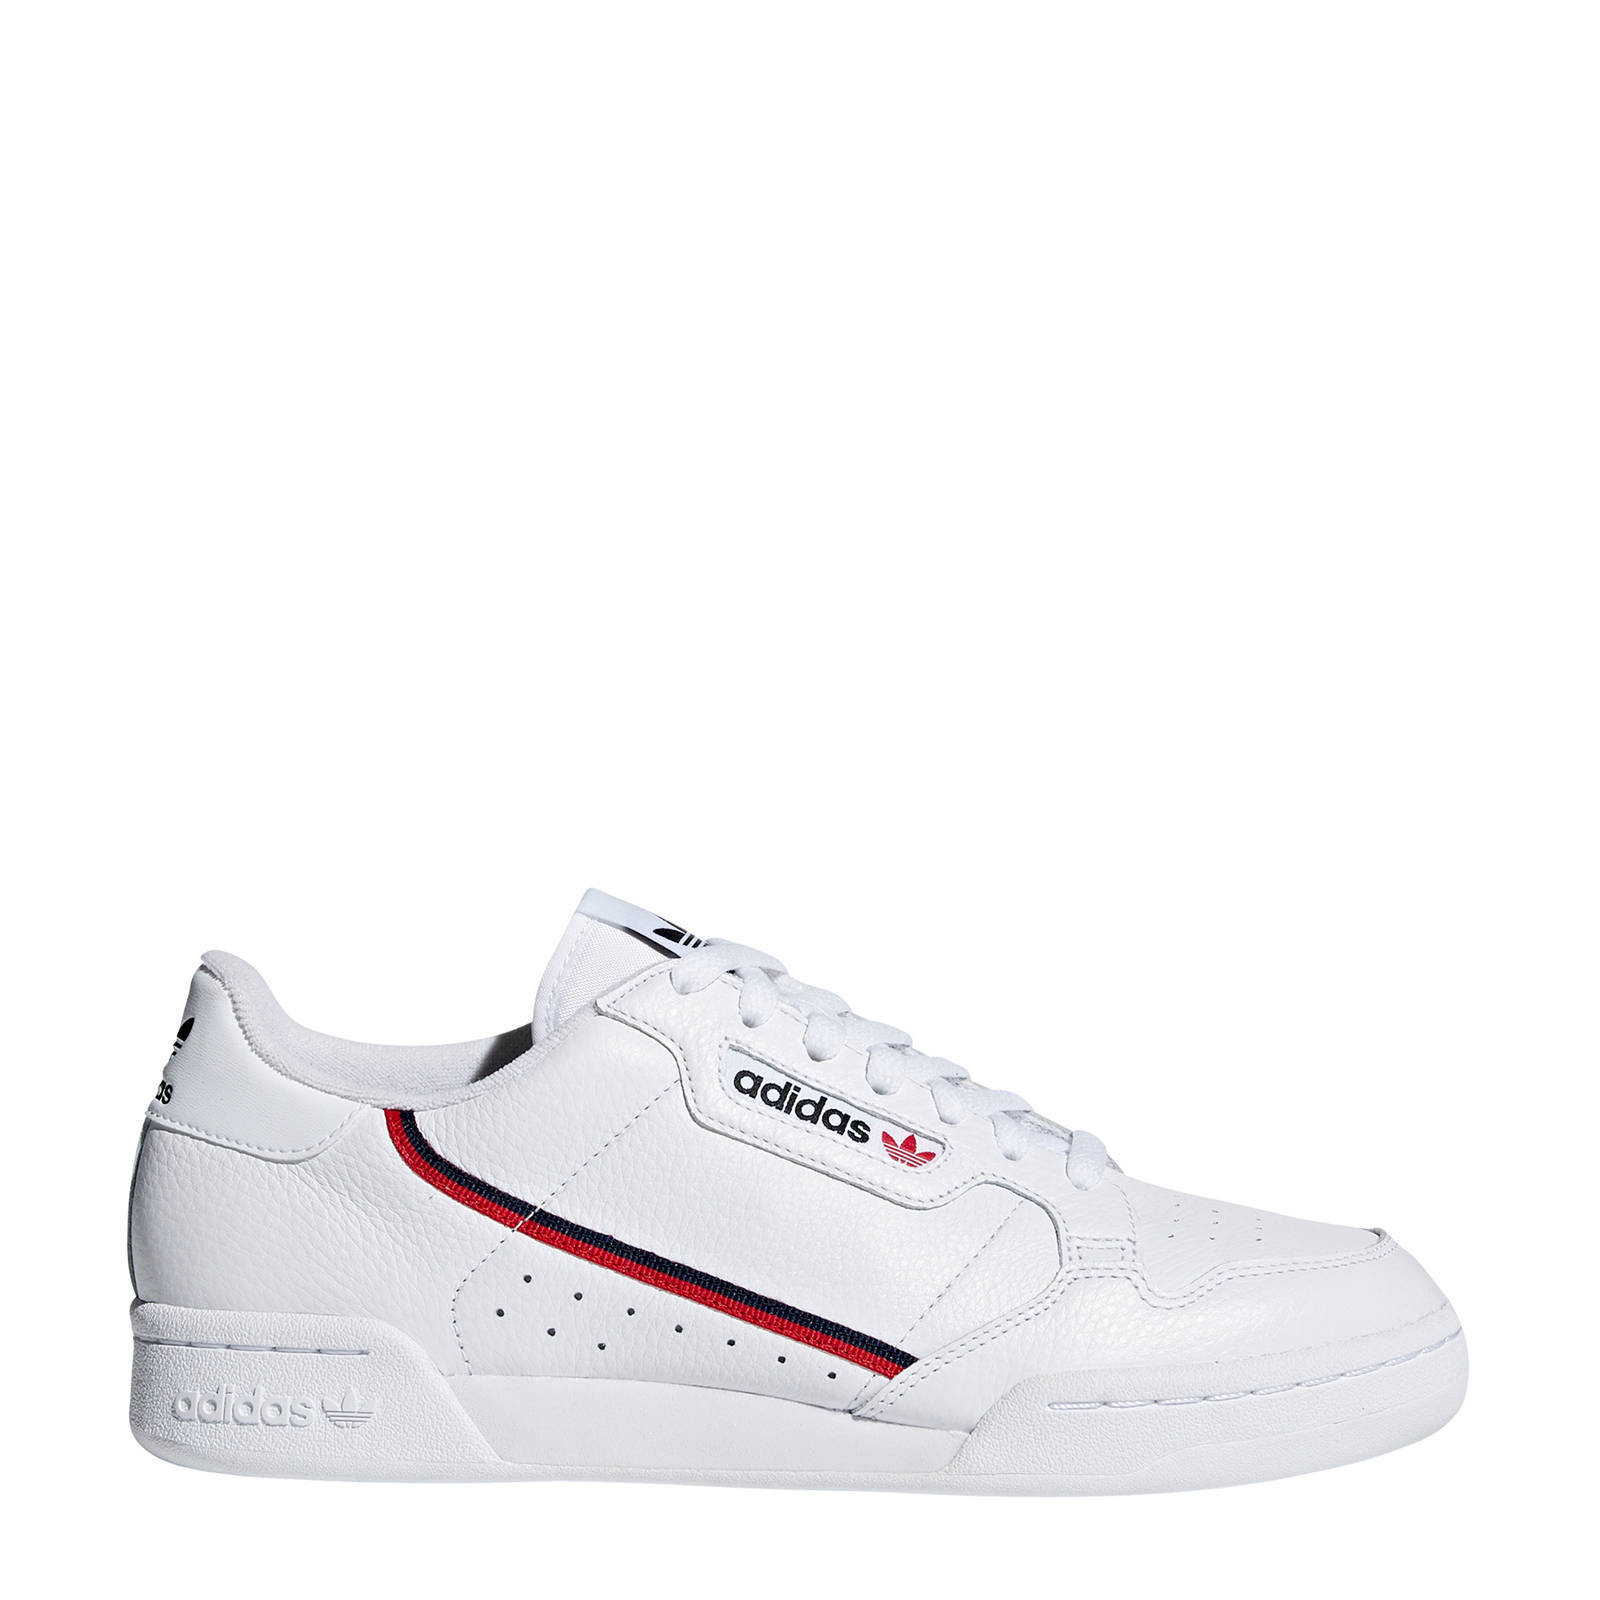 adidas Originals Continental 80 sneakers wit/donkerblauw ...